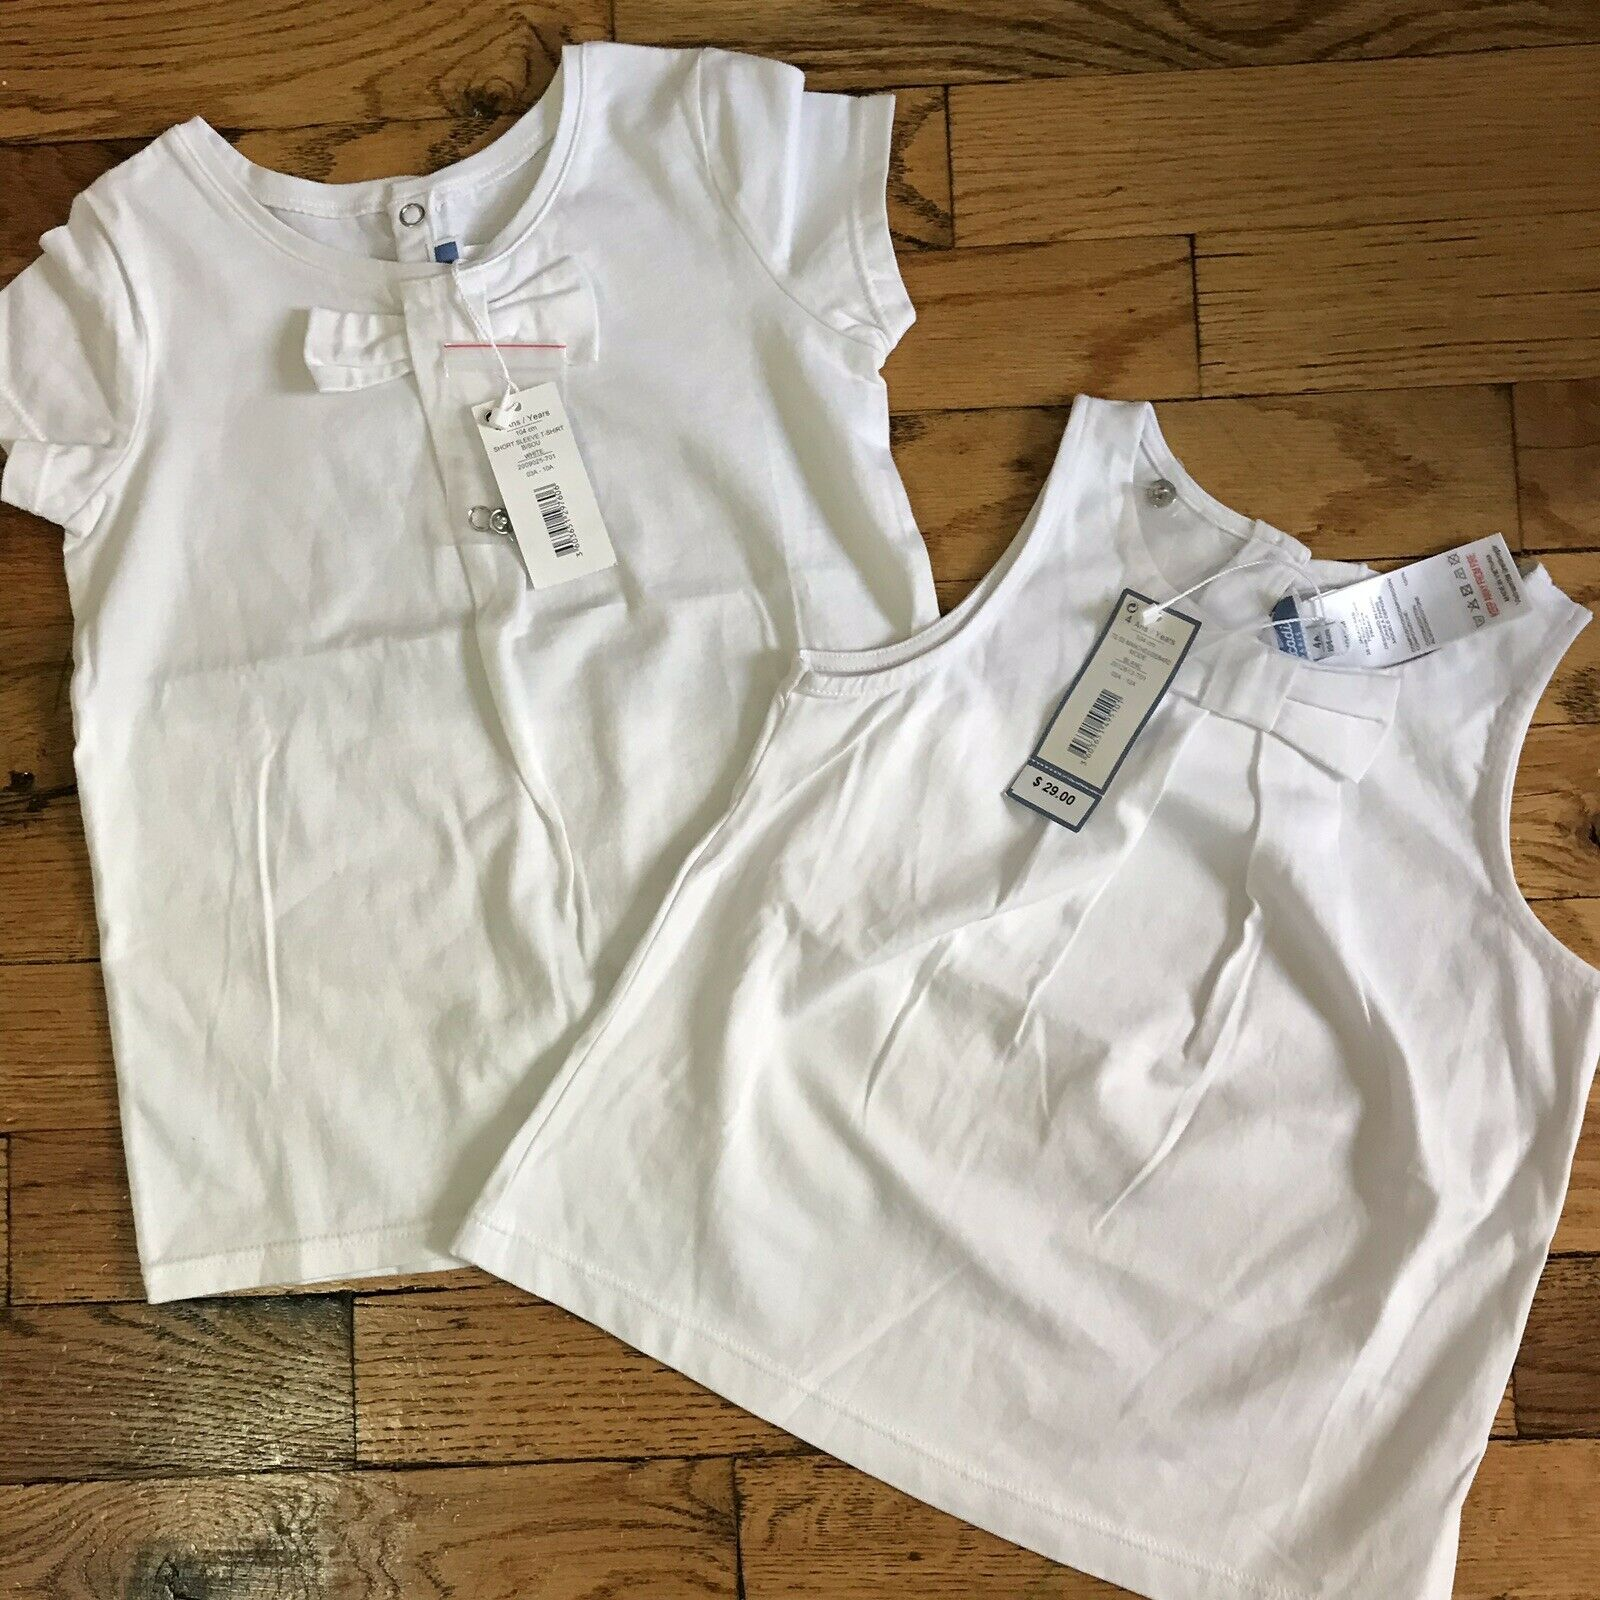 NWT! Lot Of 2 JACADI White Cotton Tops 4 Yrs